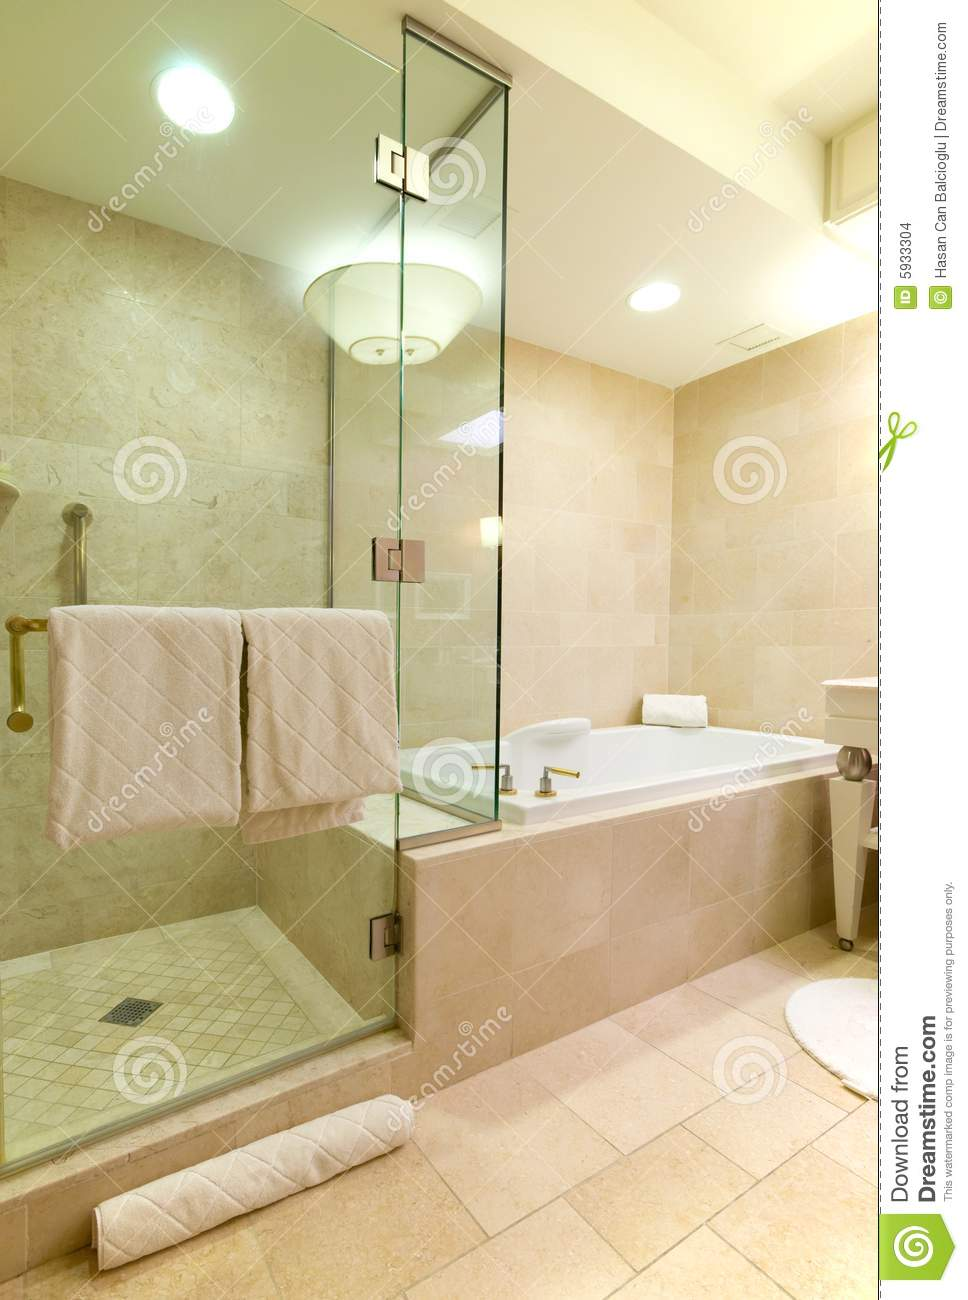 Luxury hotel bathroom stock photo Image of bathroom